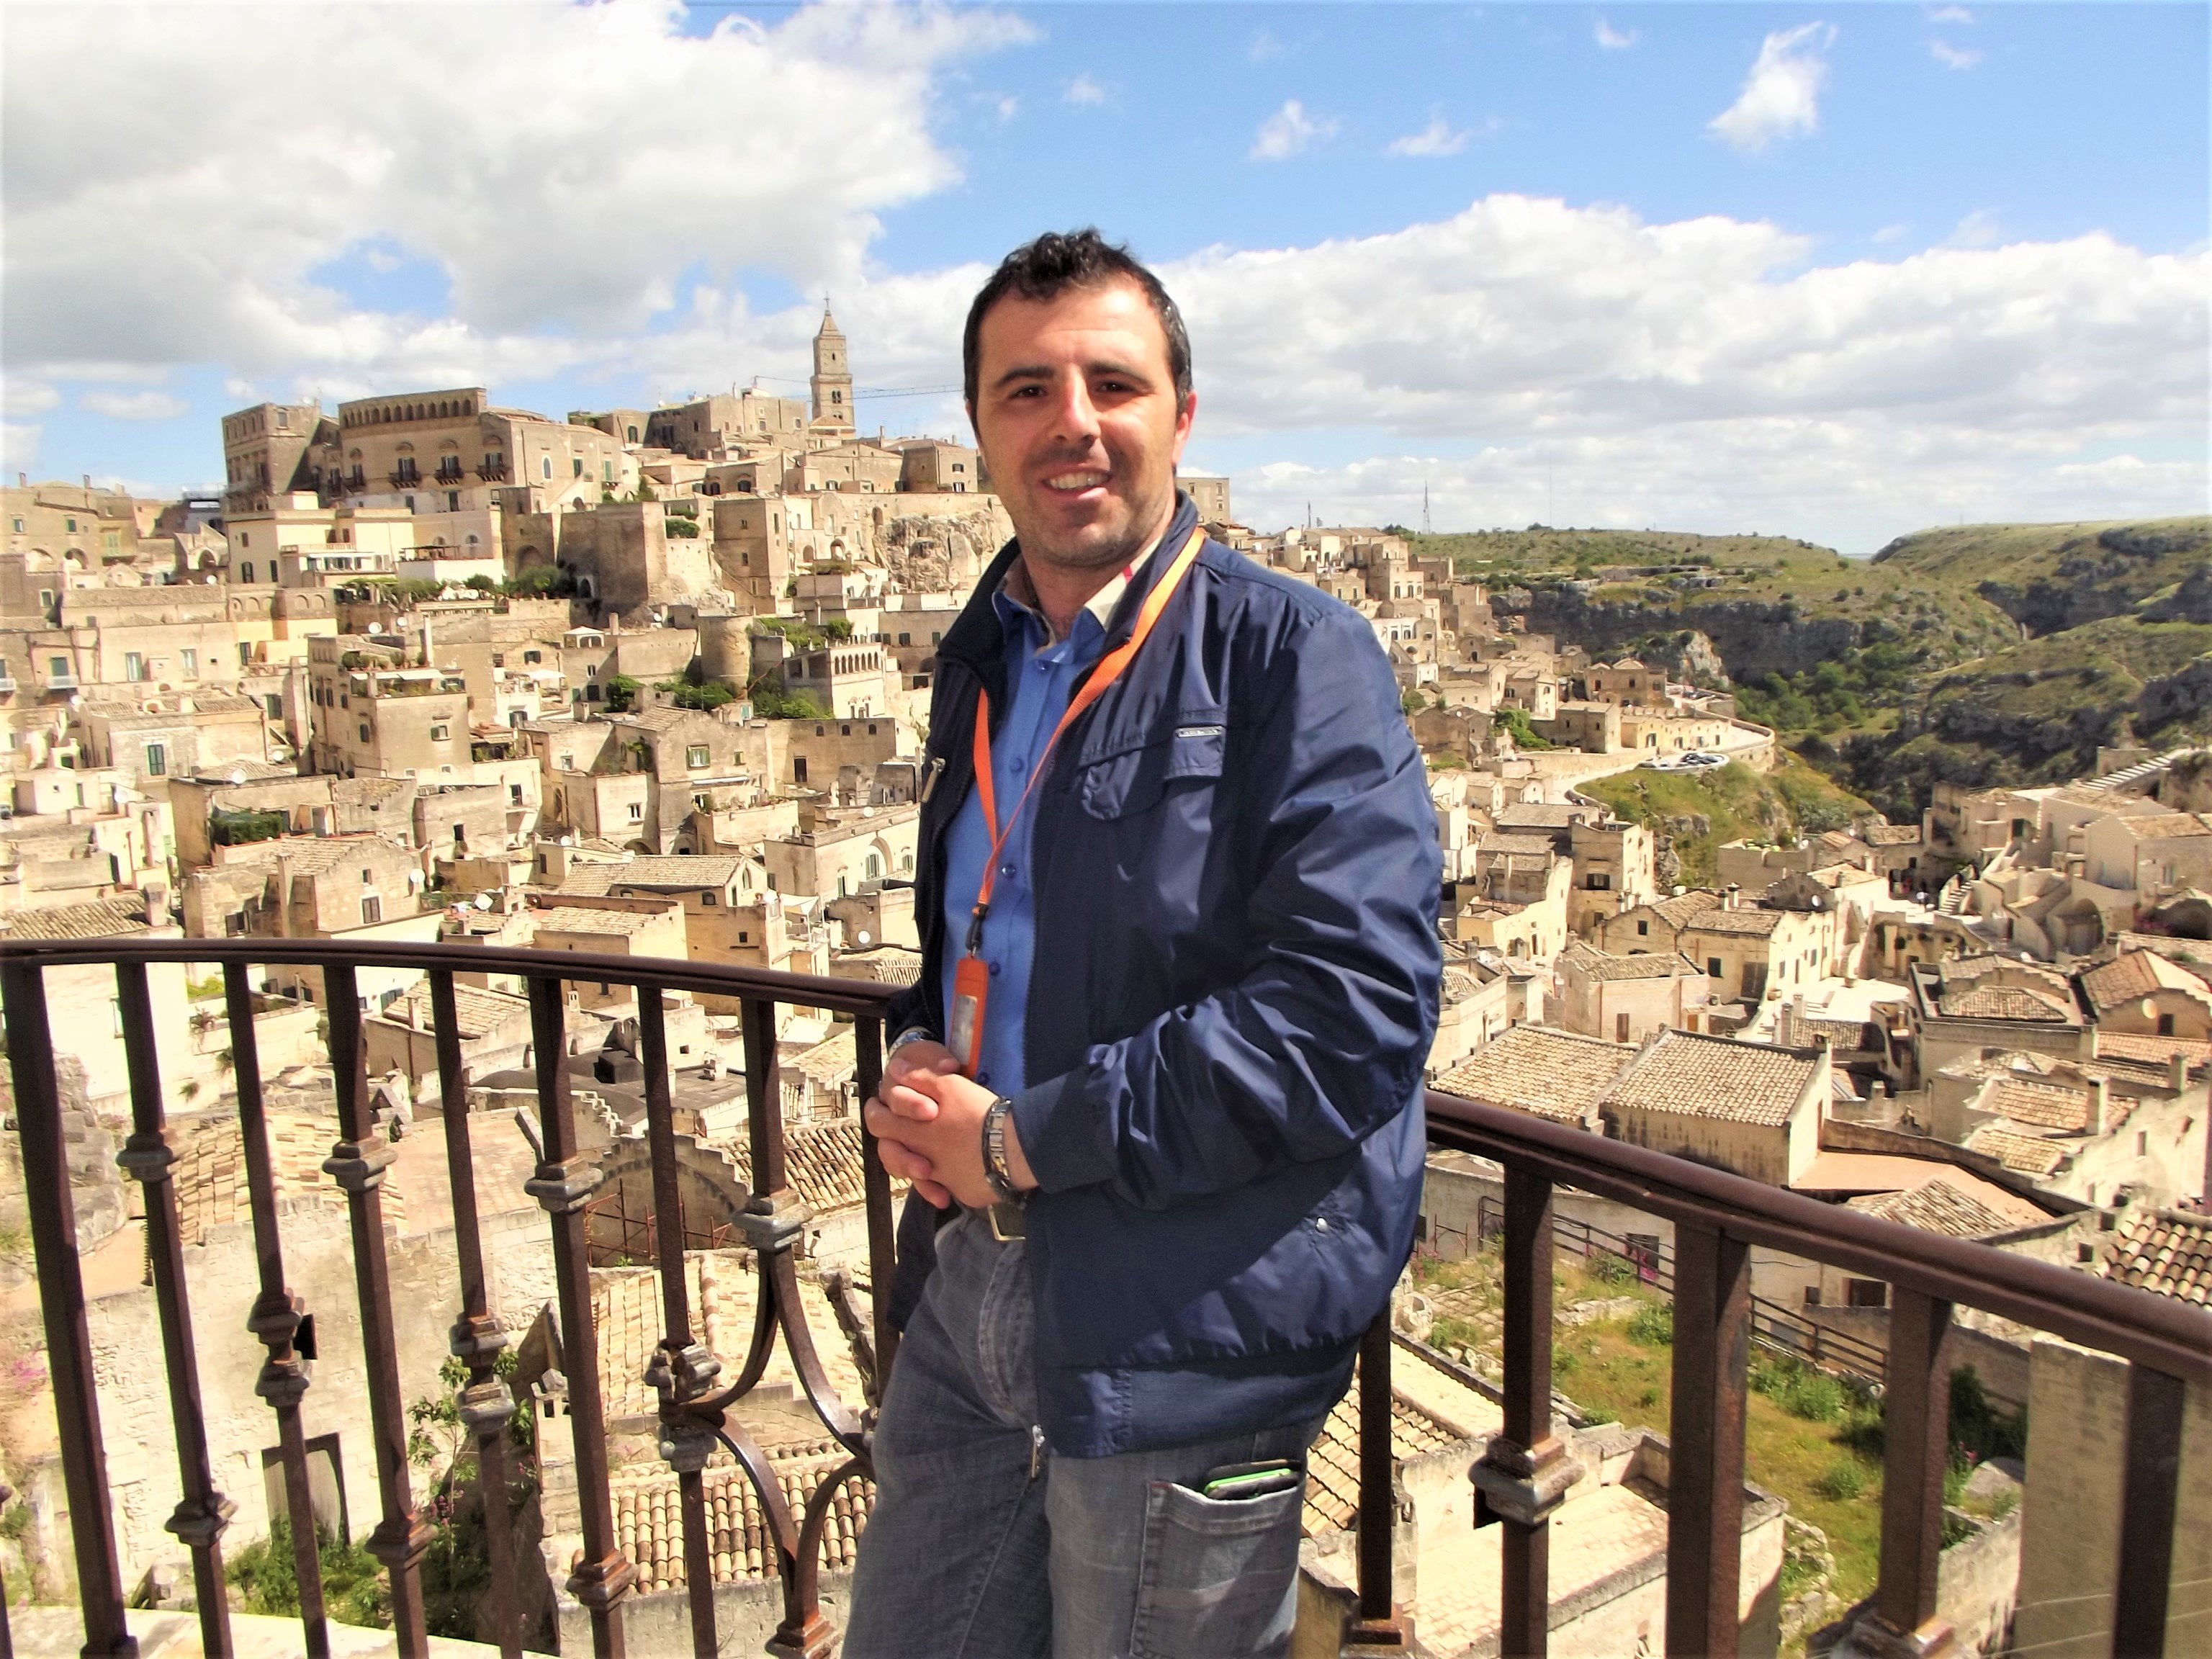 Guide-Around-Matera-Silvio-Scocuzza-Tour-Guide-Sasso-Caveoso